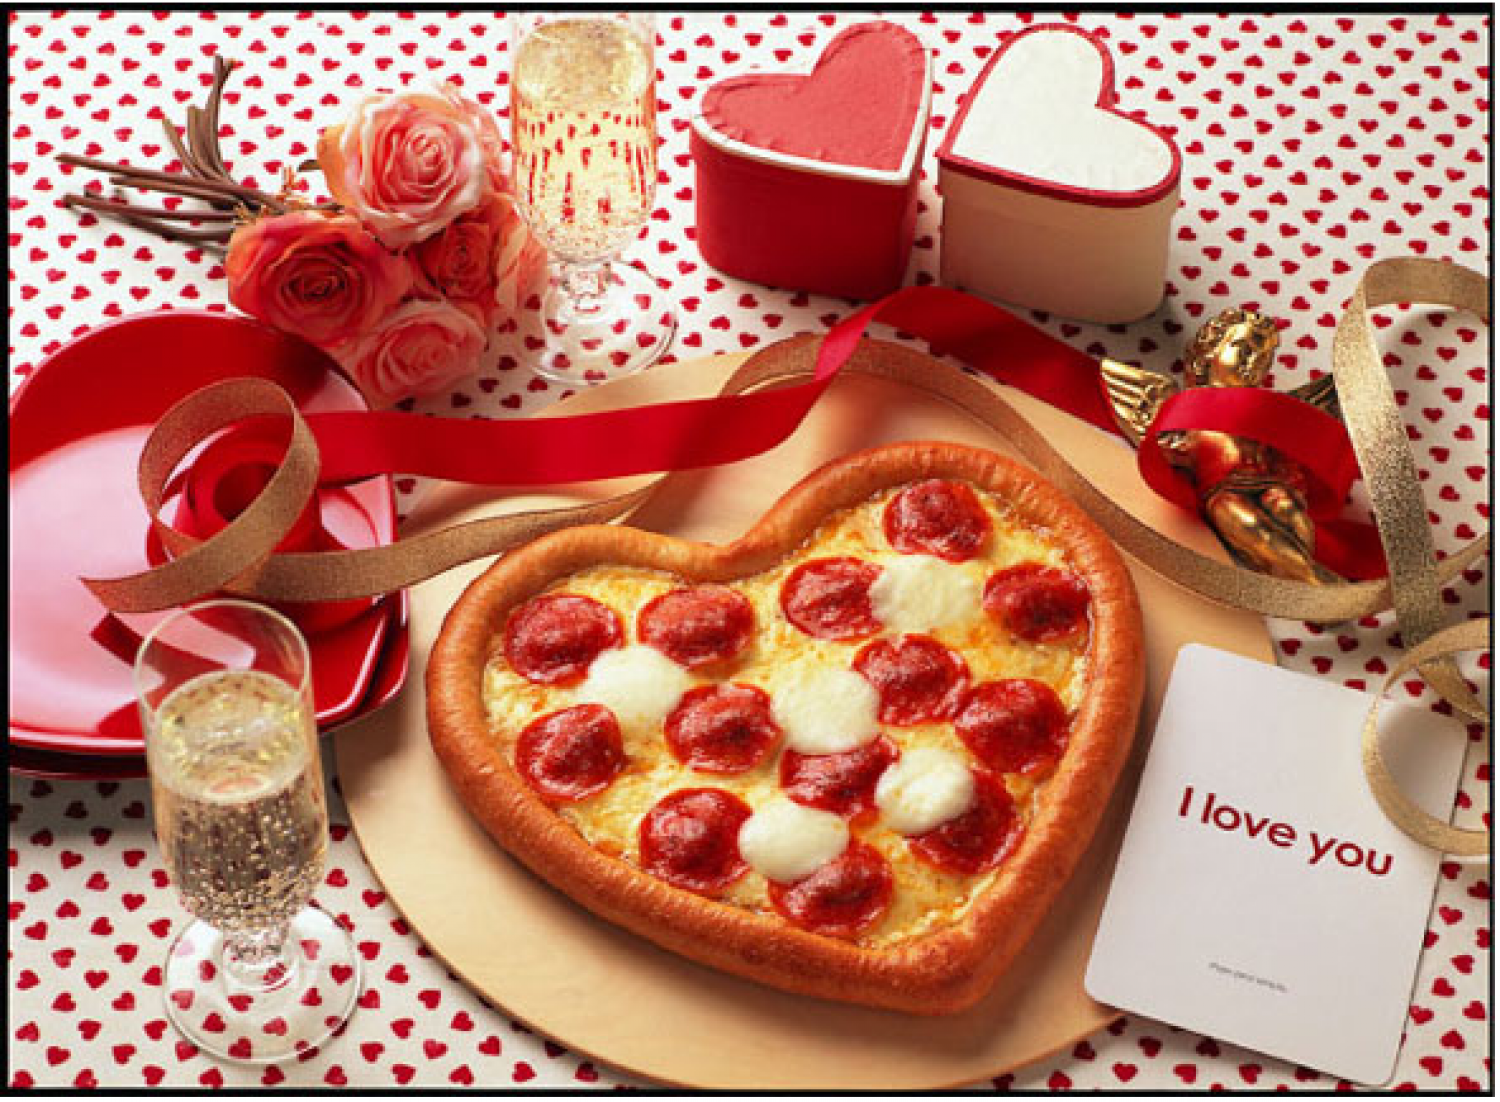 Pizza and romantic evening for Valentine's Day - foto 1645